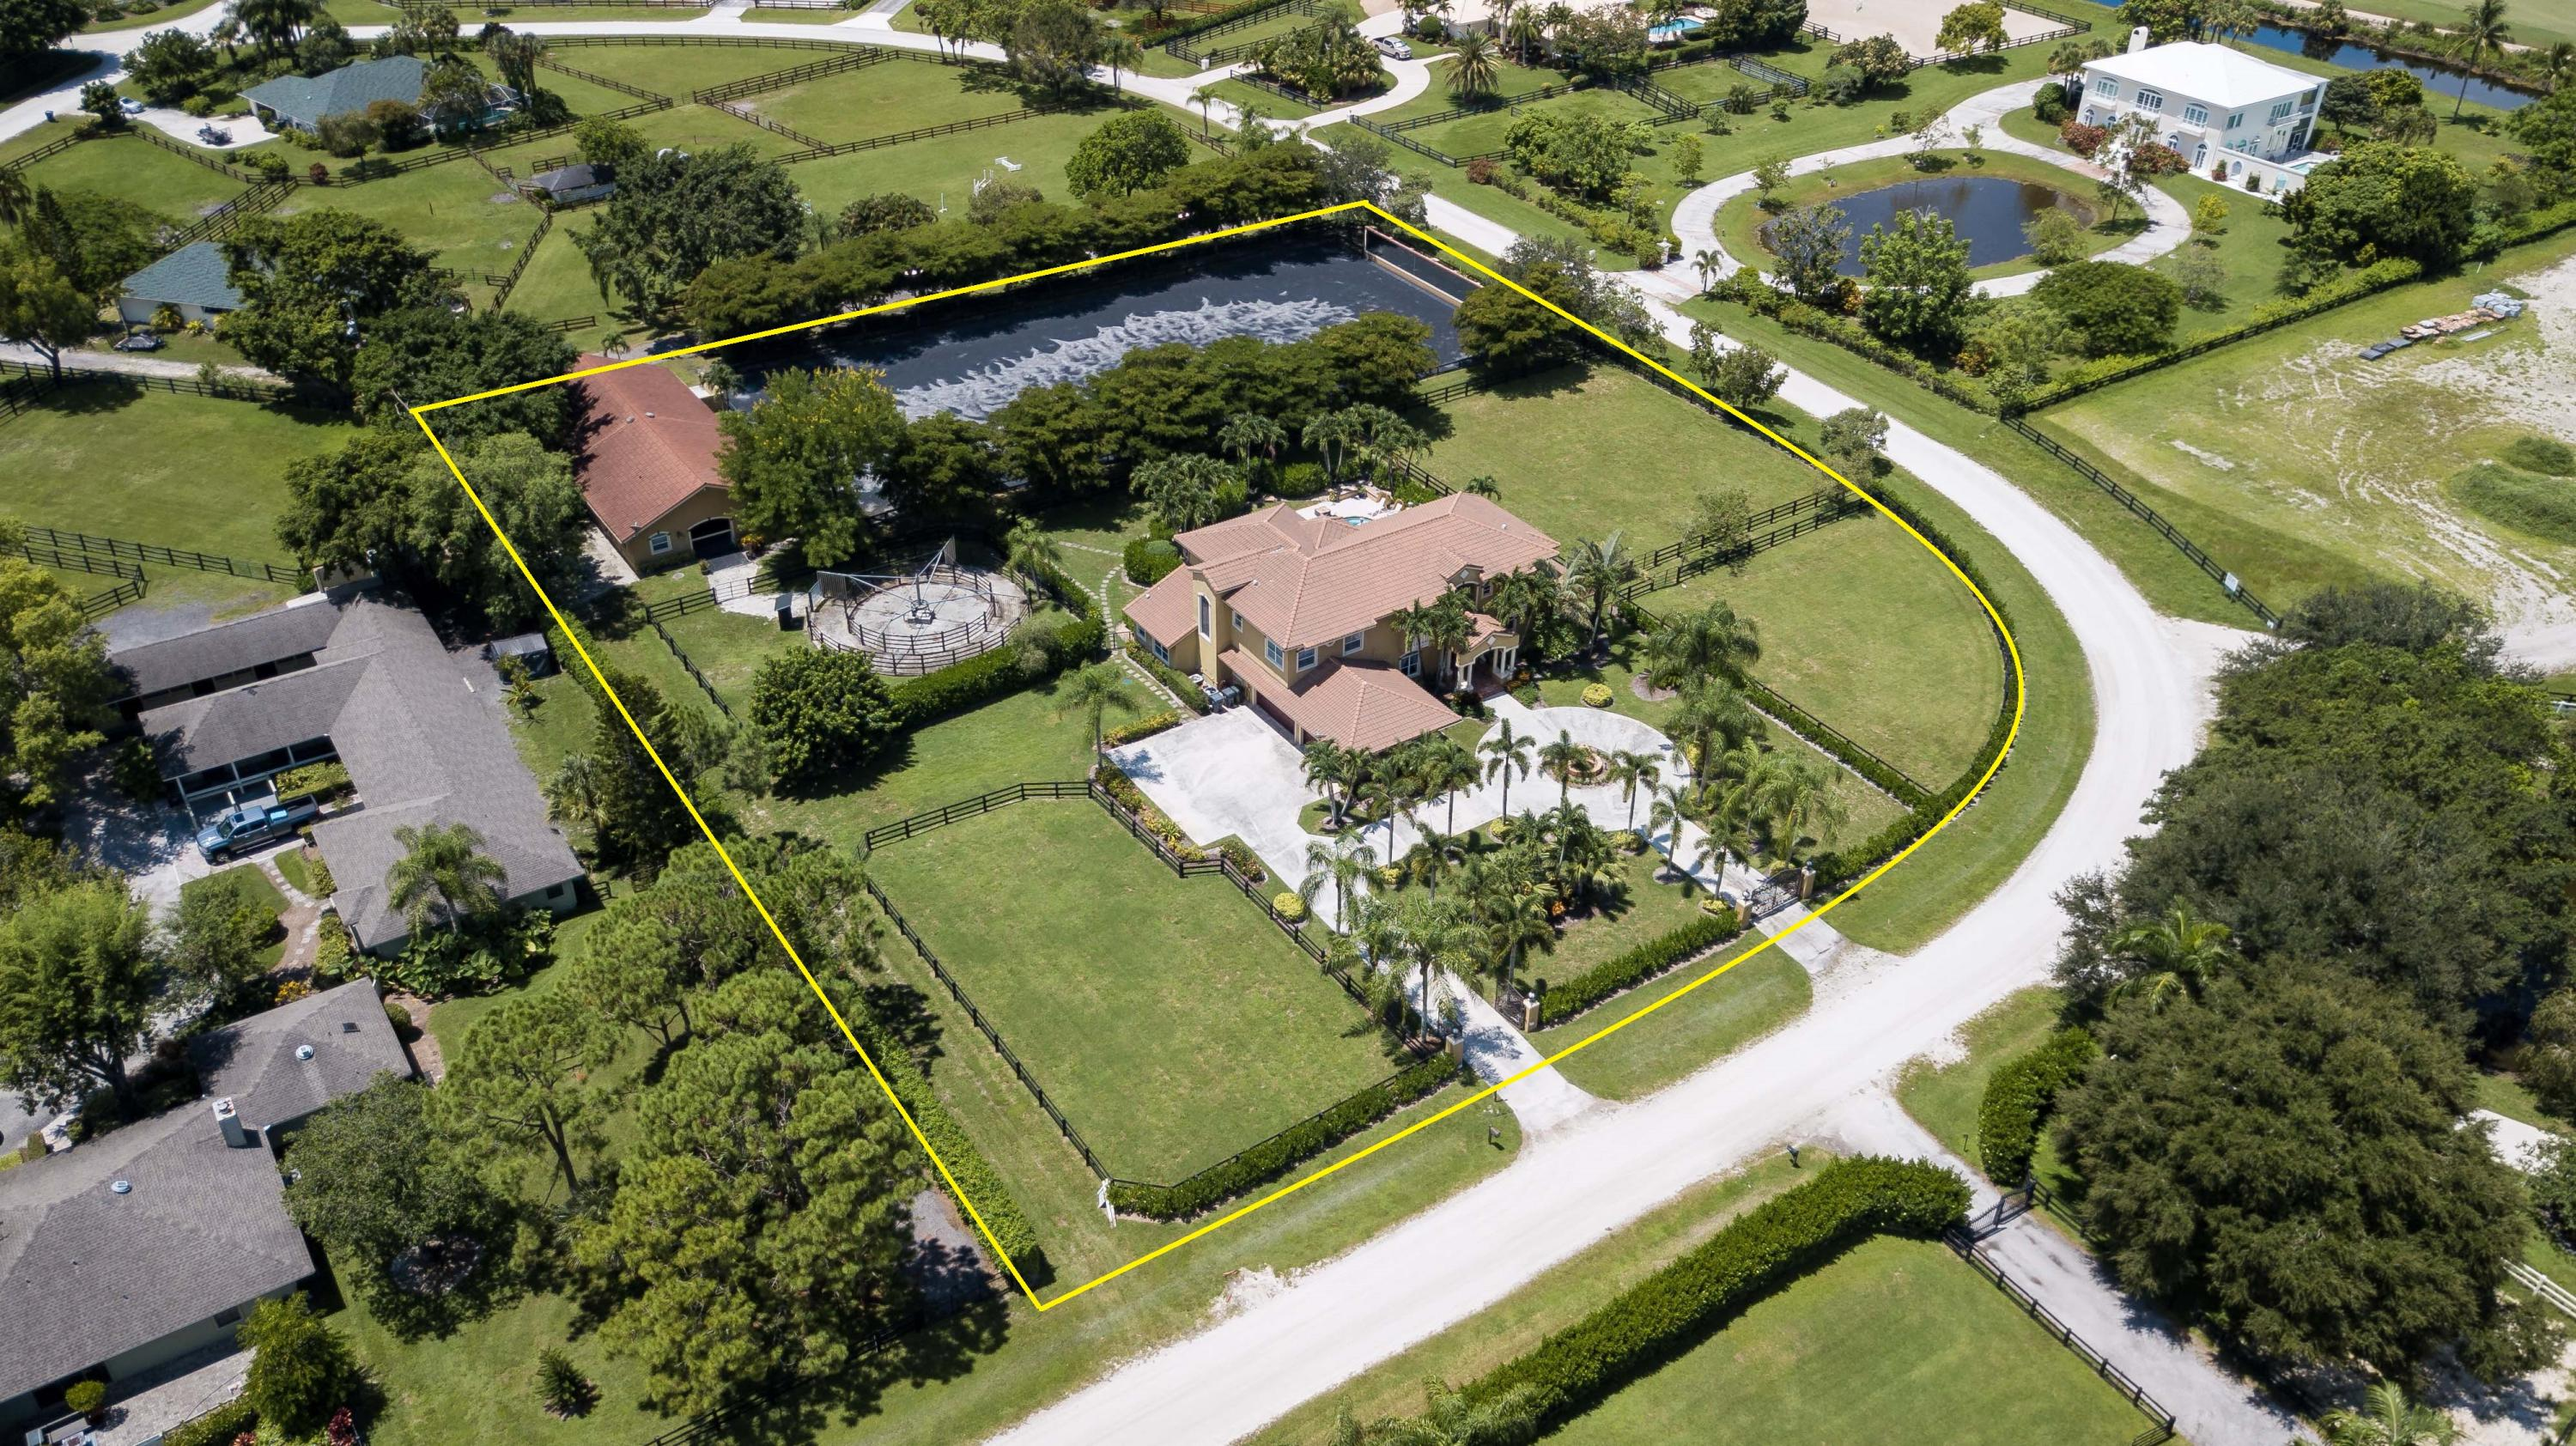 14829 Rolling Rock Place, Wellington, Florida 33414, 6 Bedrooms Bedrooms, ,4 BathroomsBathrooms,Single Family,For Sale,Rolling Rock,RX-10551646